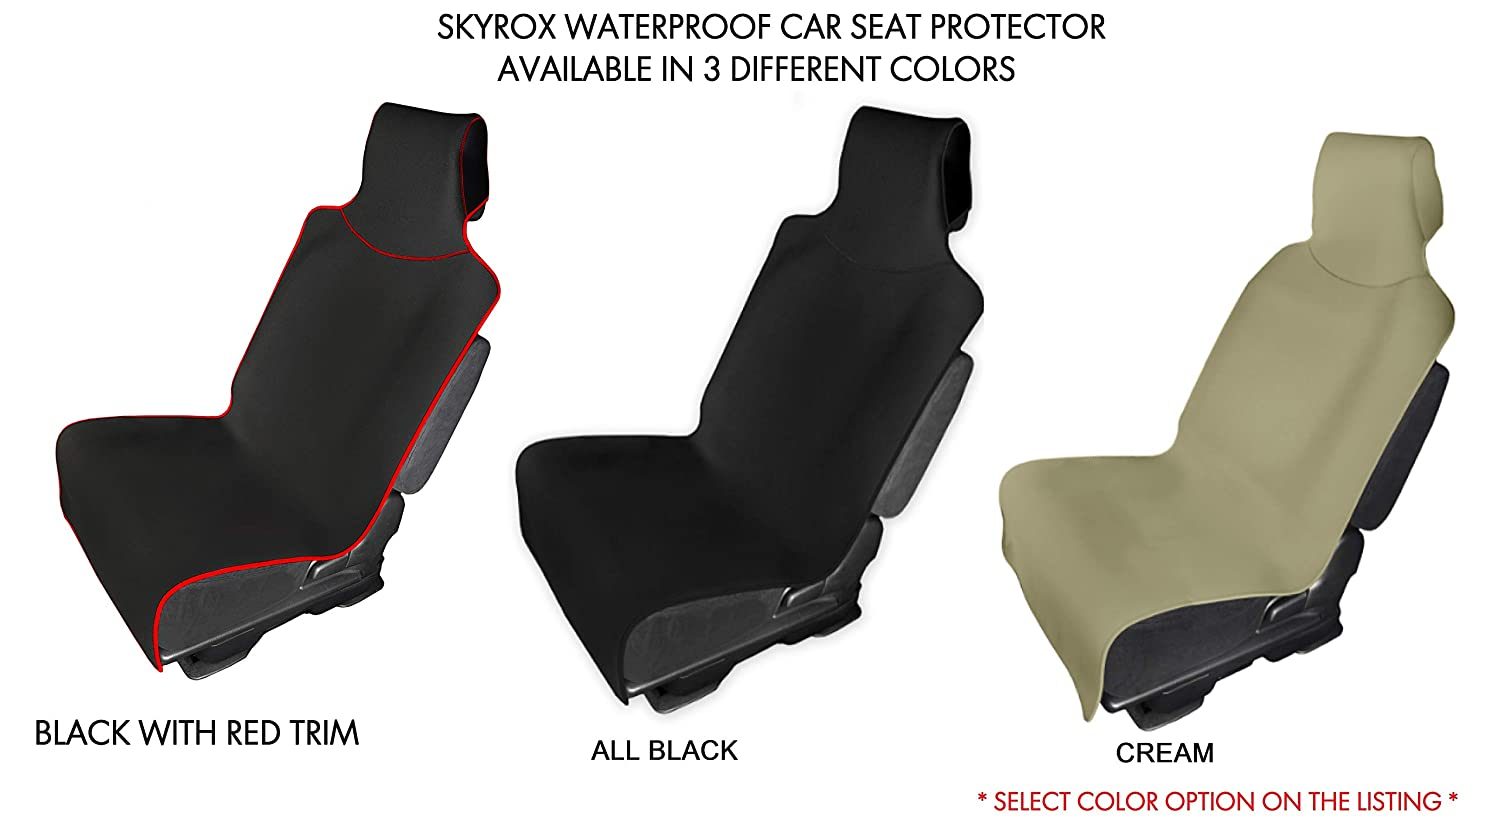 Best for Beach Protects Your Seat from Sweat Truck Running Yoga Waterproof Car Seat Cover Dirt SkyRox Gym Sweatproof Seat Protector for Car Non-Slip Neoprene Seat Cover SUV BIack Stain